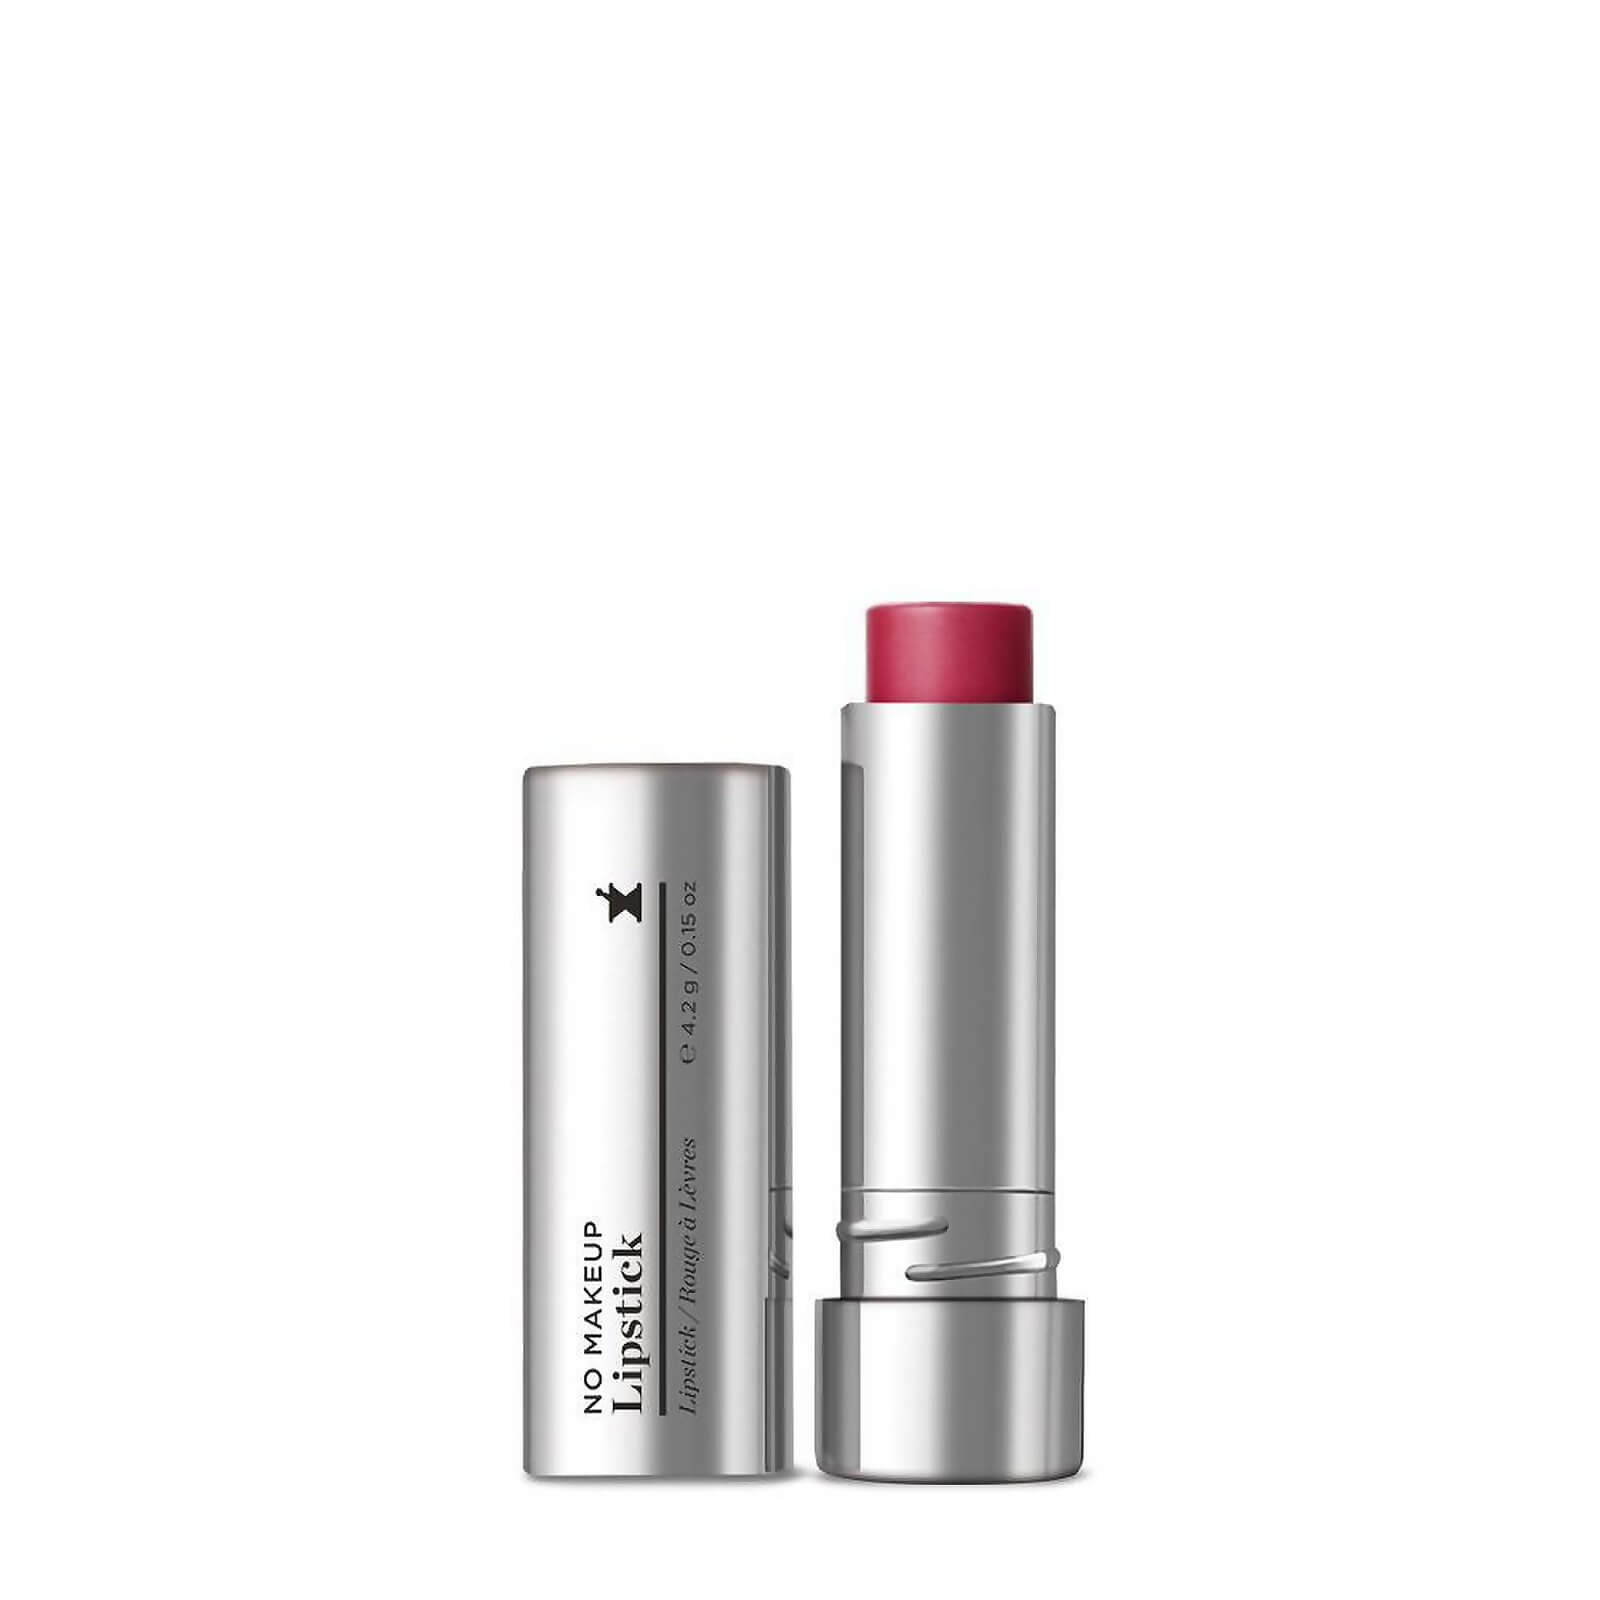 Perricone MD No Makeup Lipstick Broad Spectrum SPF15 4.2g (Various Shades) - Berry